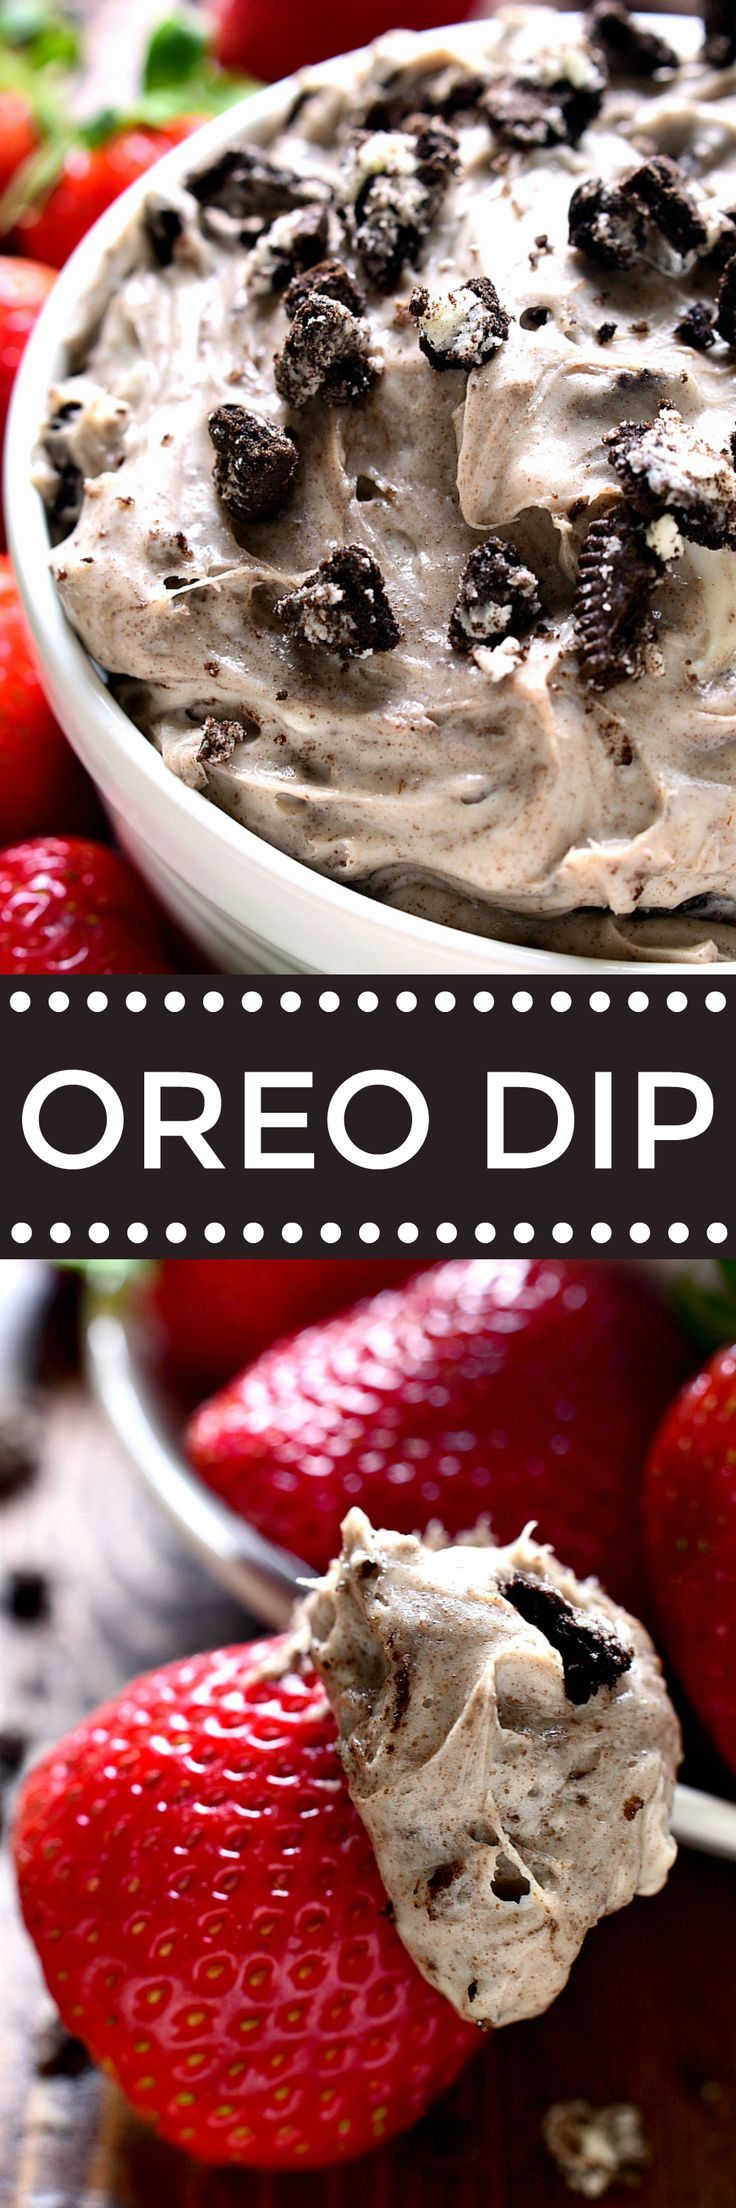 Creamy Oreo Dip Loaded With The Delicious Flavors Of Cookies Cream And Perfect For Dipping Strawberries Cookies Or Any Diy Food Recipes Food Oreo Recipes